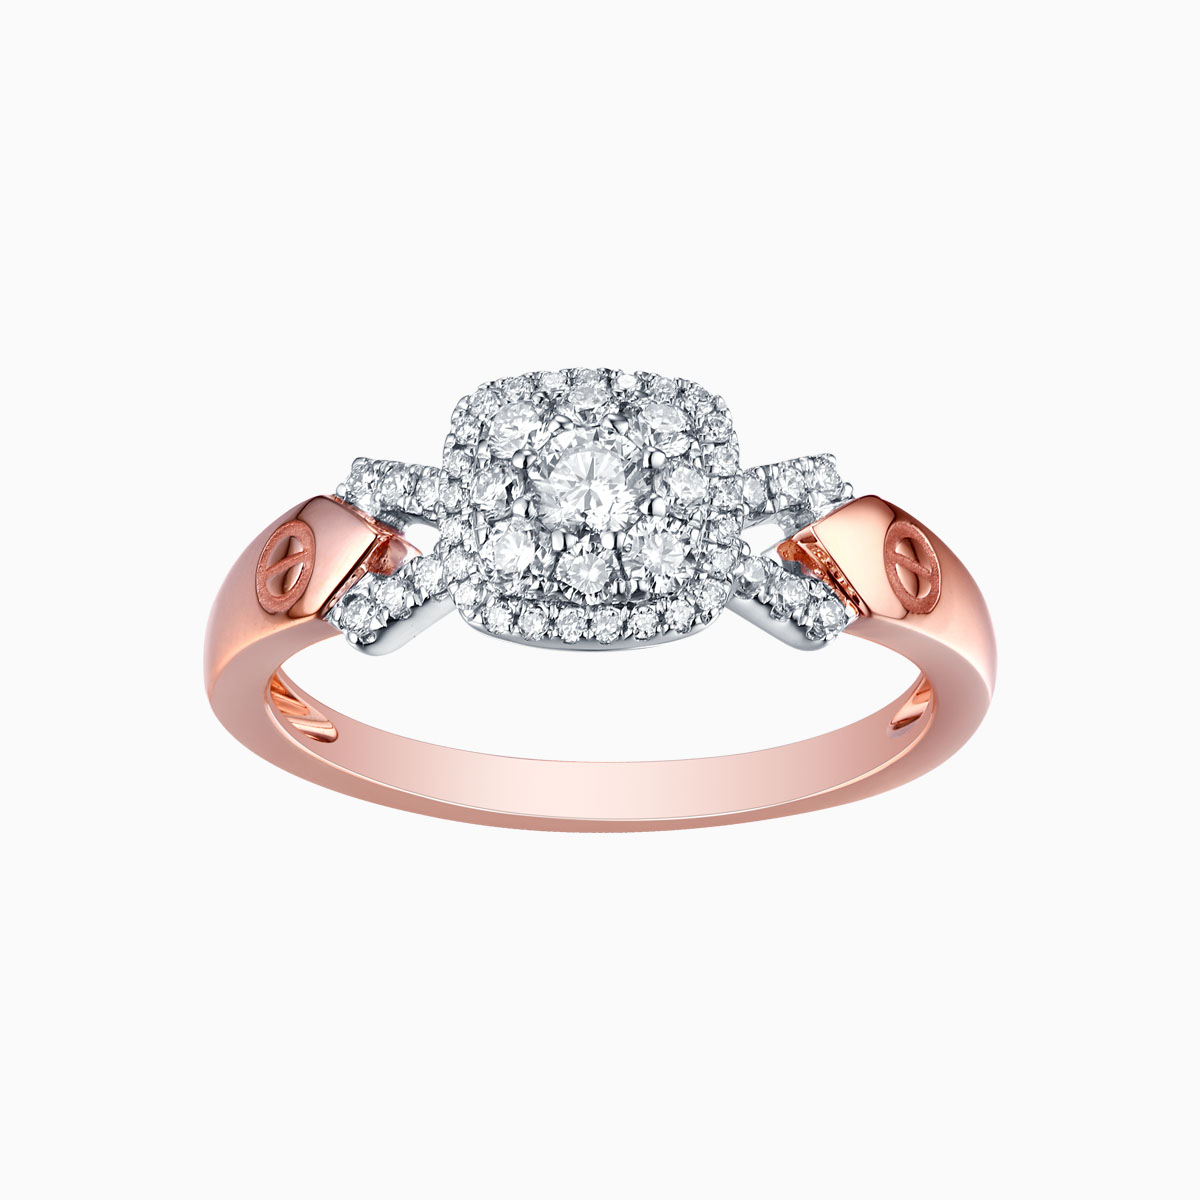 R17604WHT- 14K Rose Gold Diamond Ring, 0.45 TCW